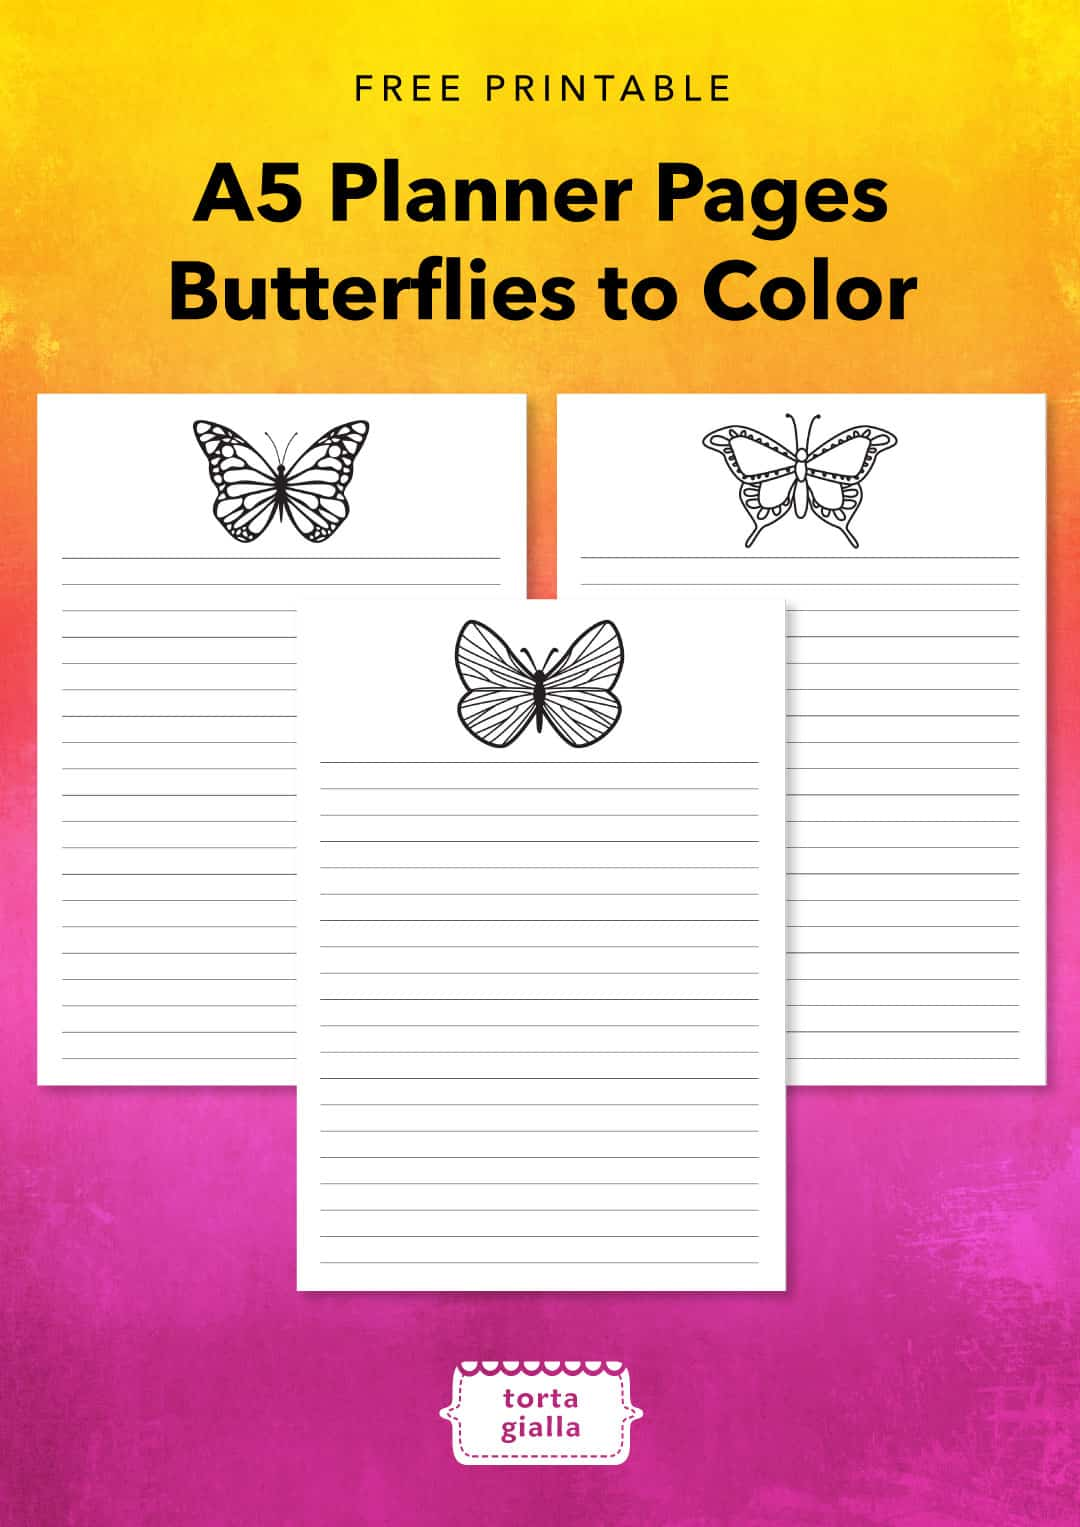 image regarding A5 Planner Printables identify Free of charge Printable - A5 Planner Internet pages - Butterflies in direction of Coloration